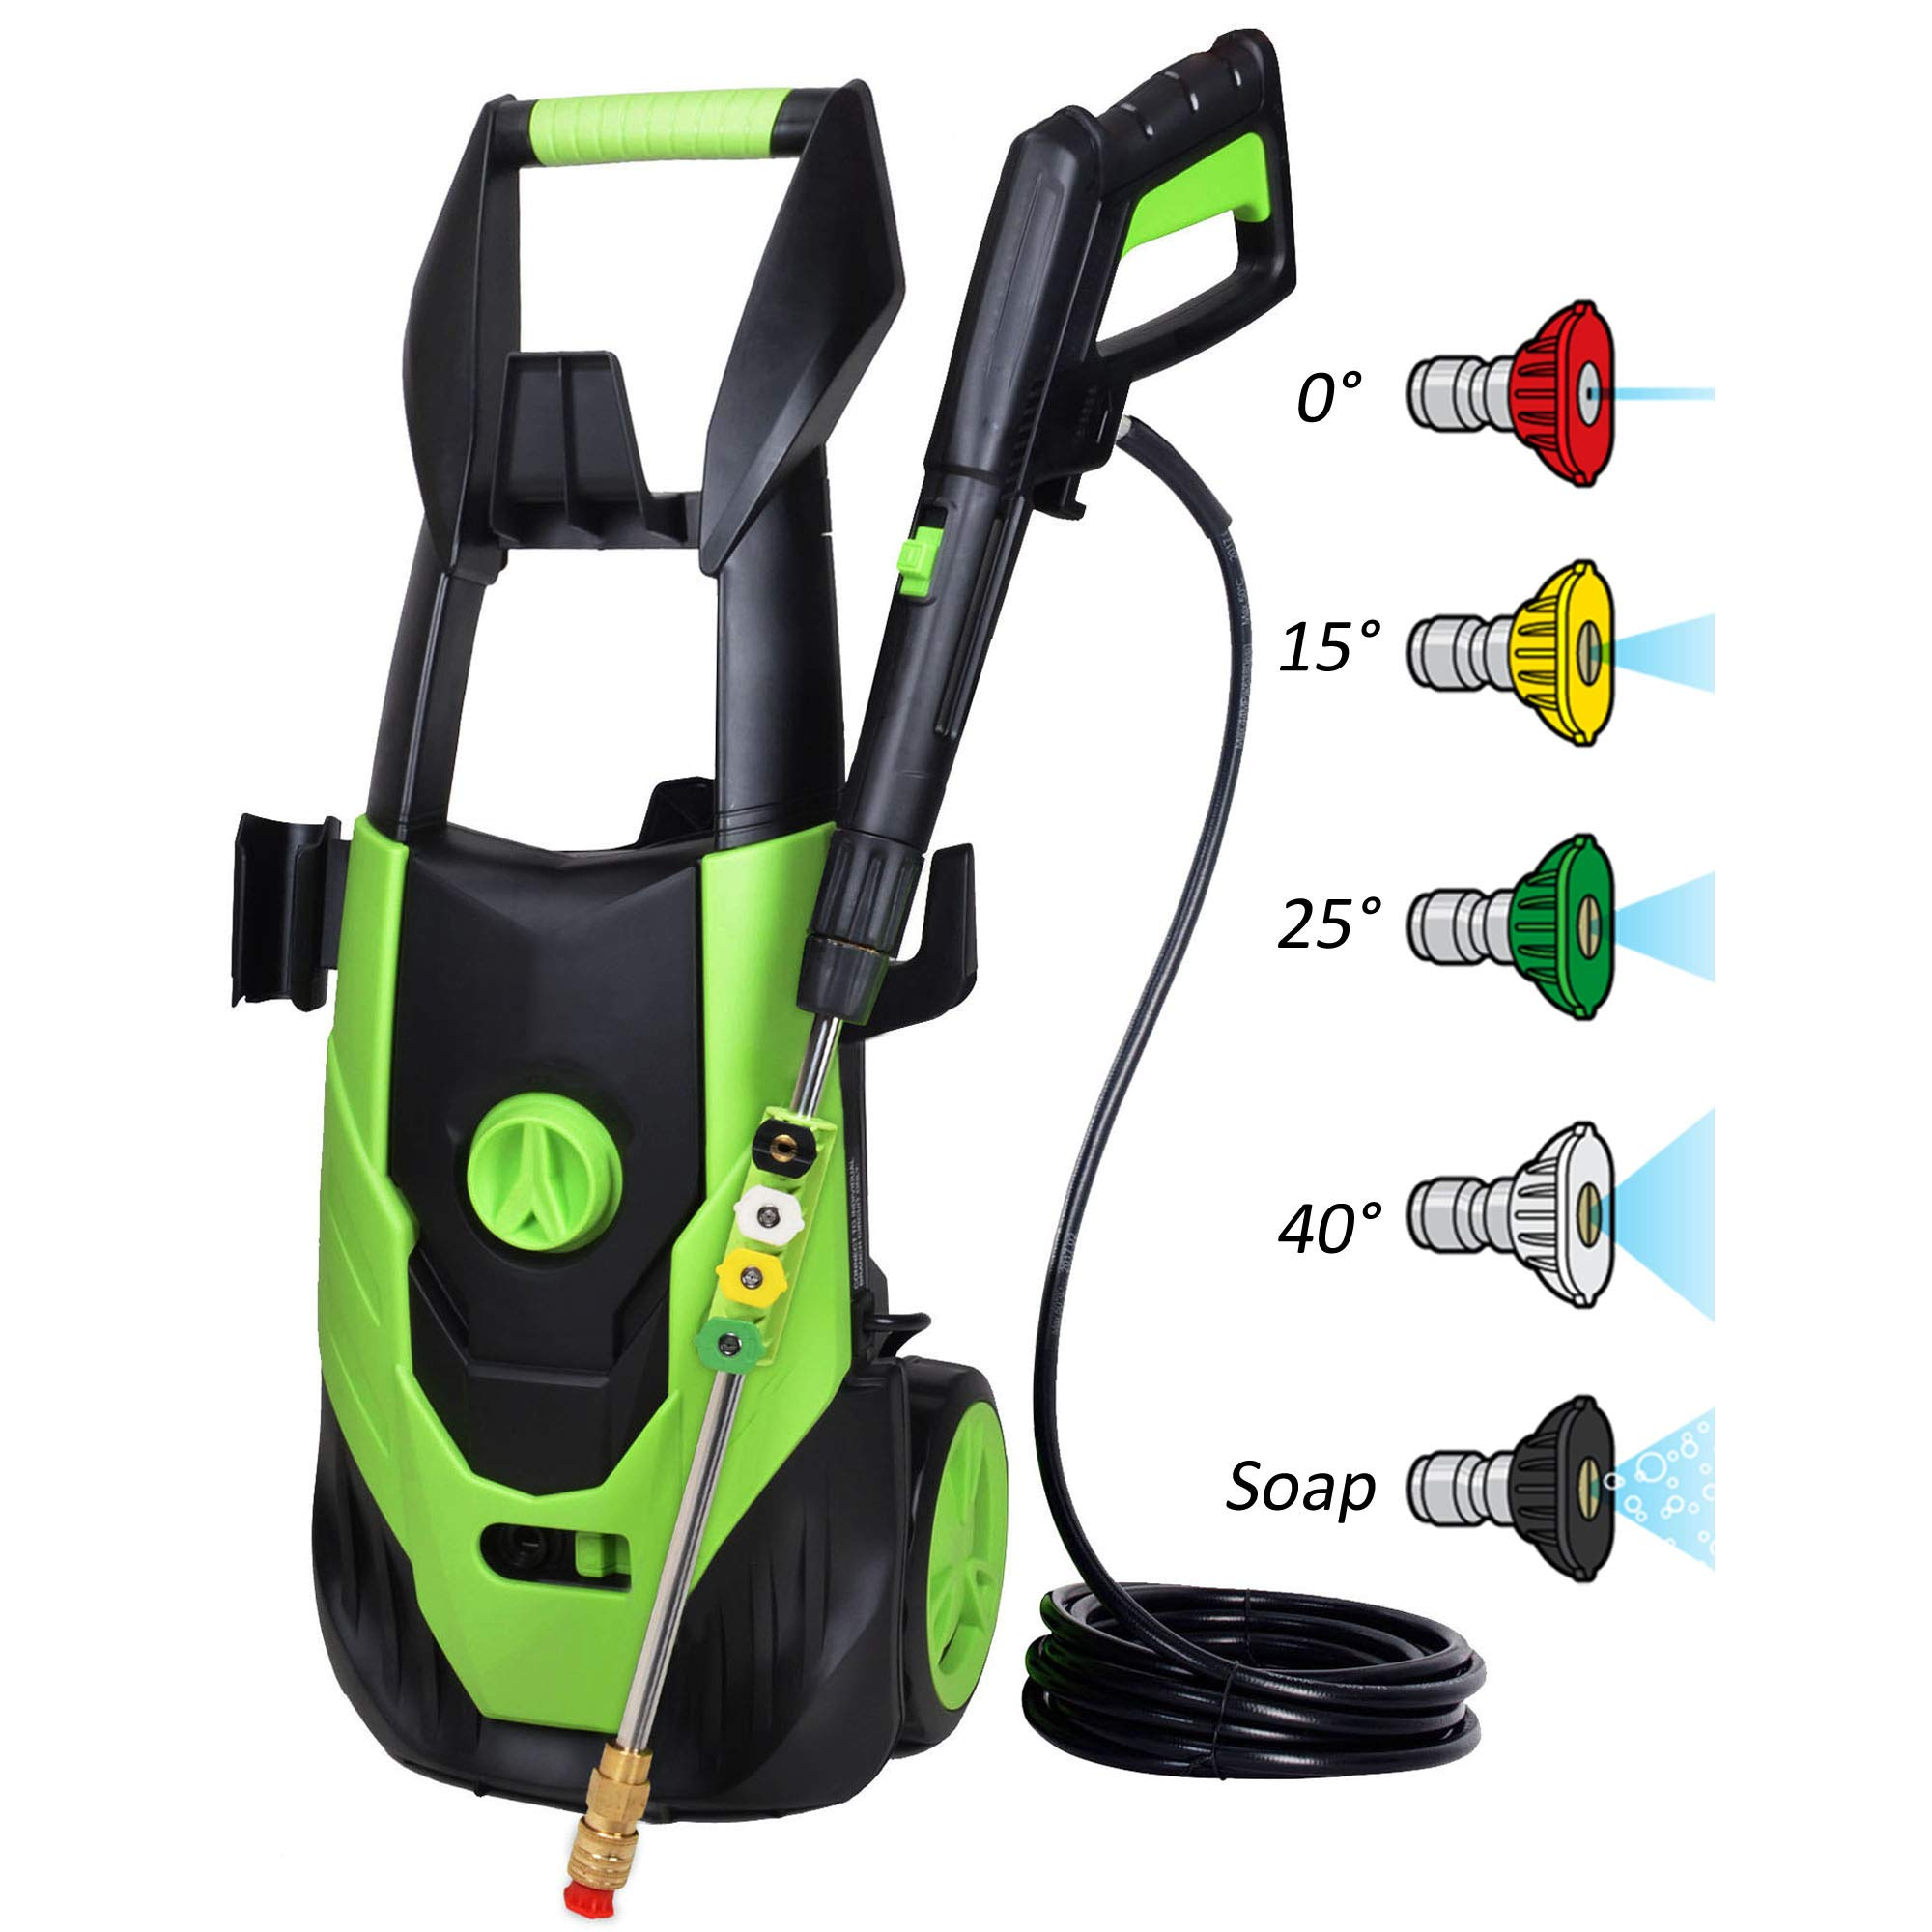 PowRyte Elite 3500 PSI 1.80 GPM Electric Pressure Washer, Power Wash Machine with 5 Quick-Connect Spray Tips, Electric Power Washer-Green